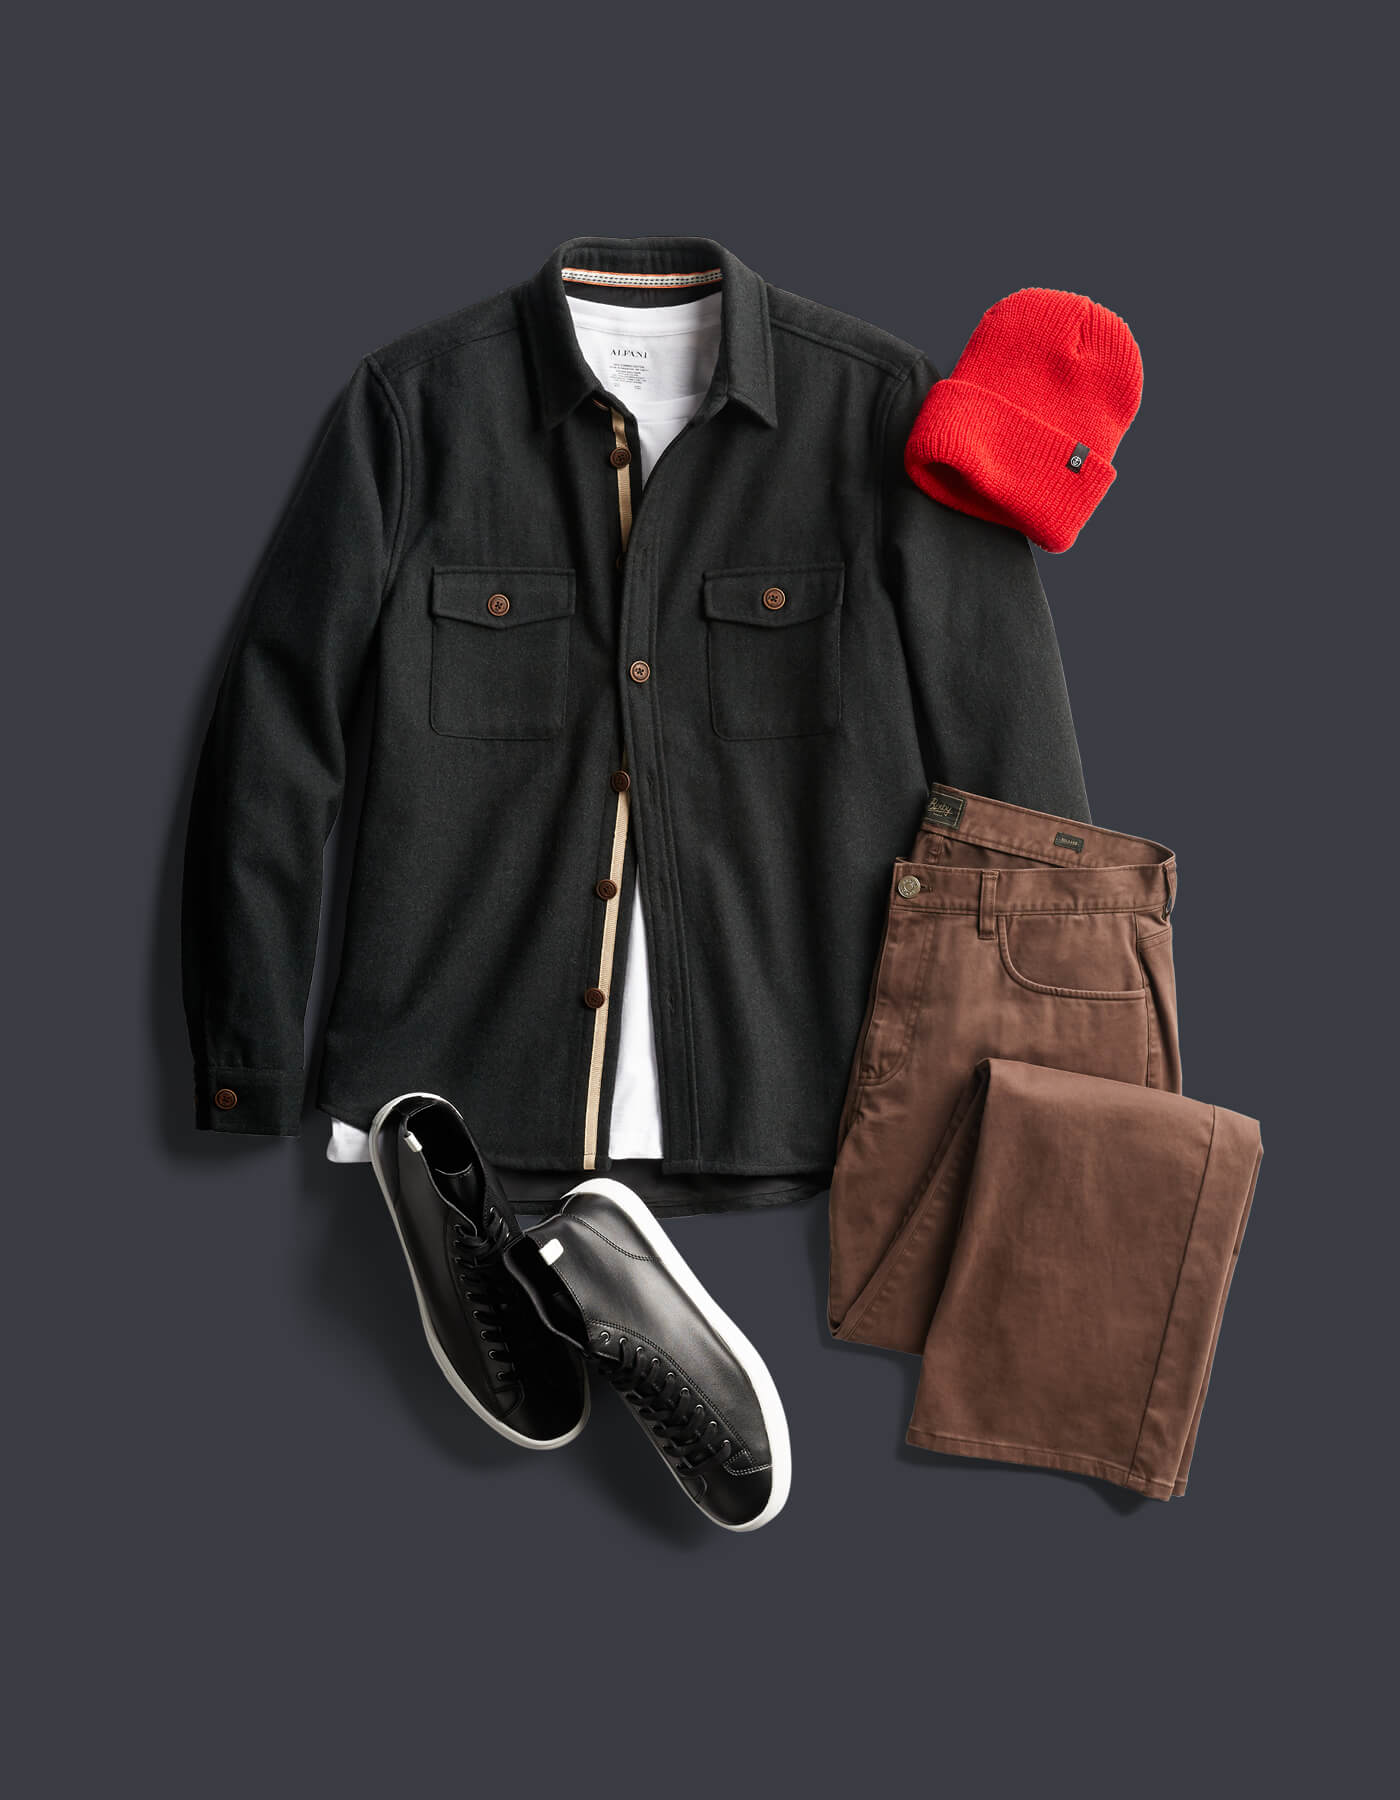 Men's winter fashion